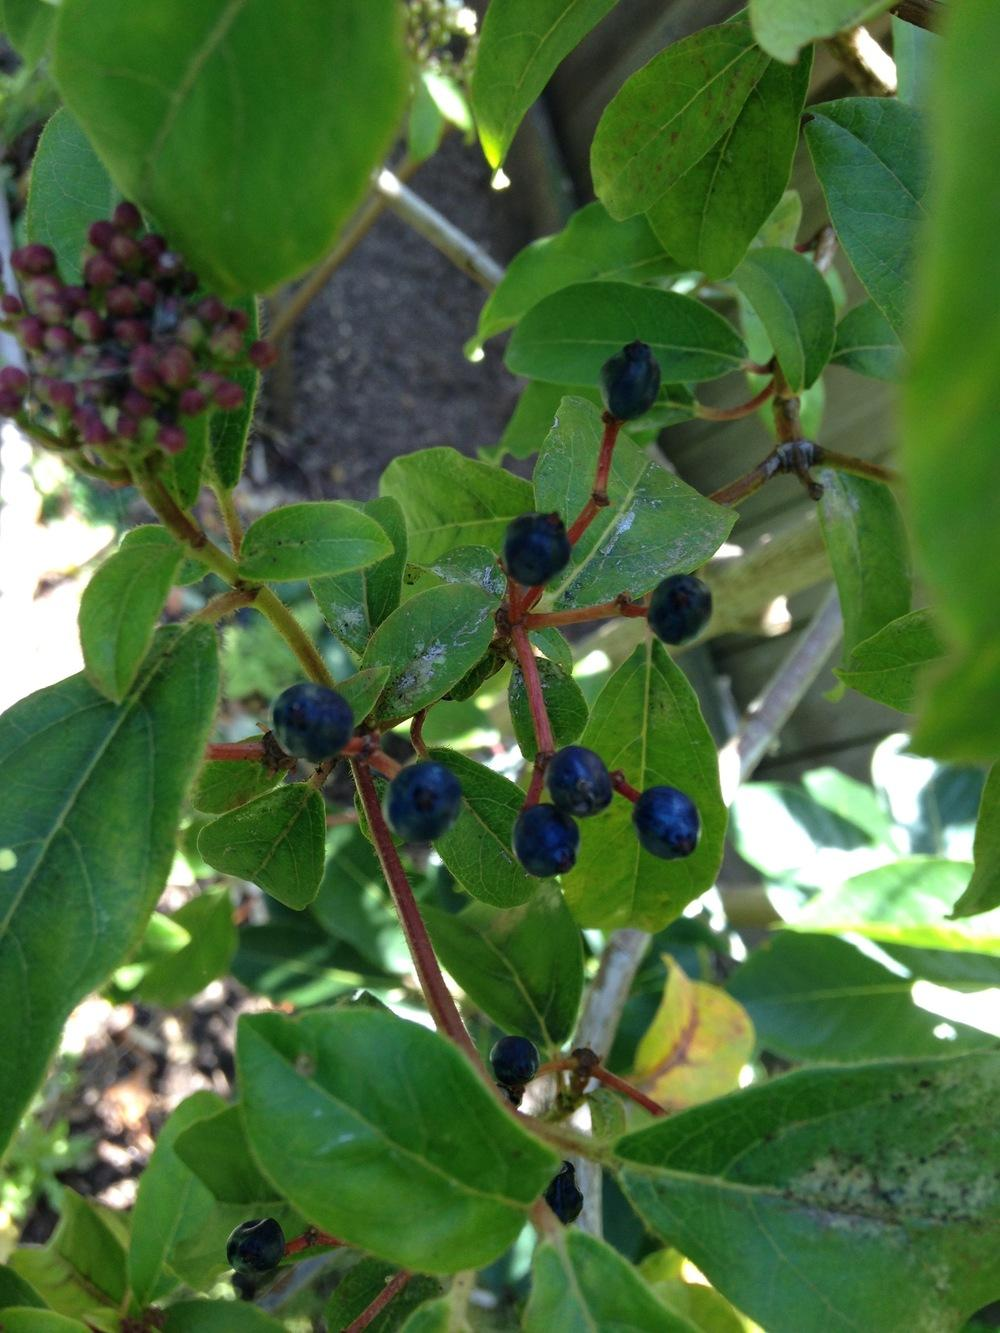 Plant id forum tree id white flower blue berries garden thumb of 2016 09 05eljardinerogringo28a5f2 izmirmasajfo